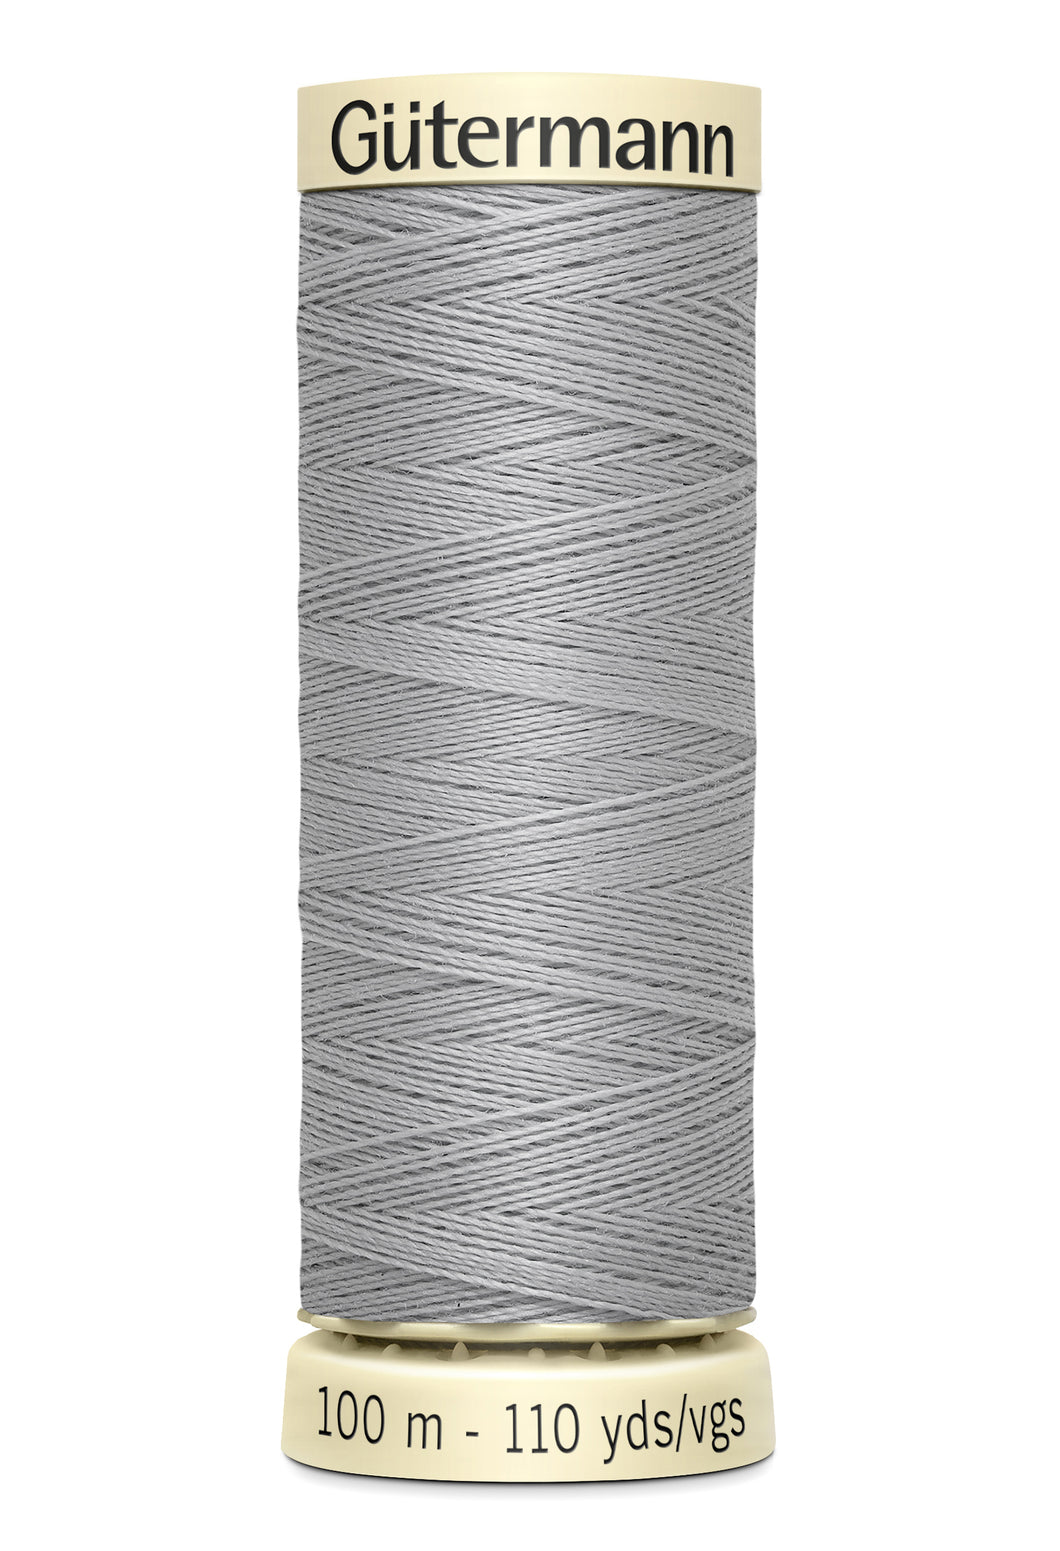 Gutermann Sew All Thread - Colour 38 Light Grey